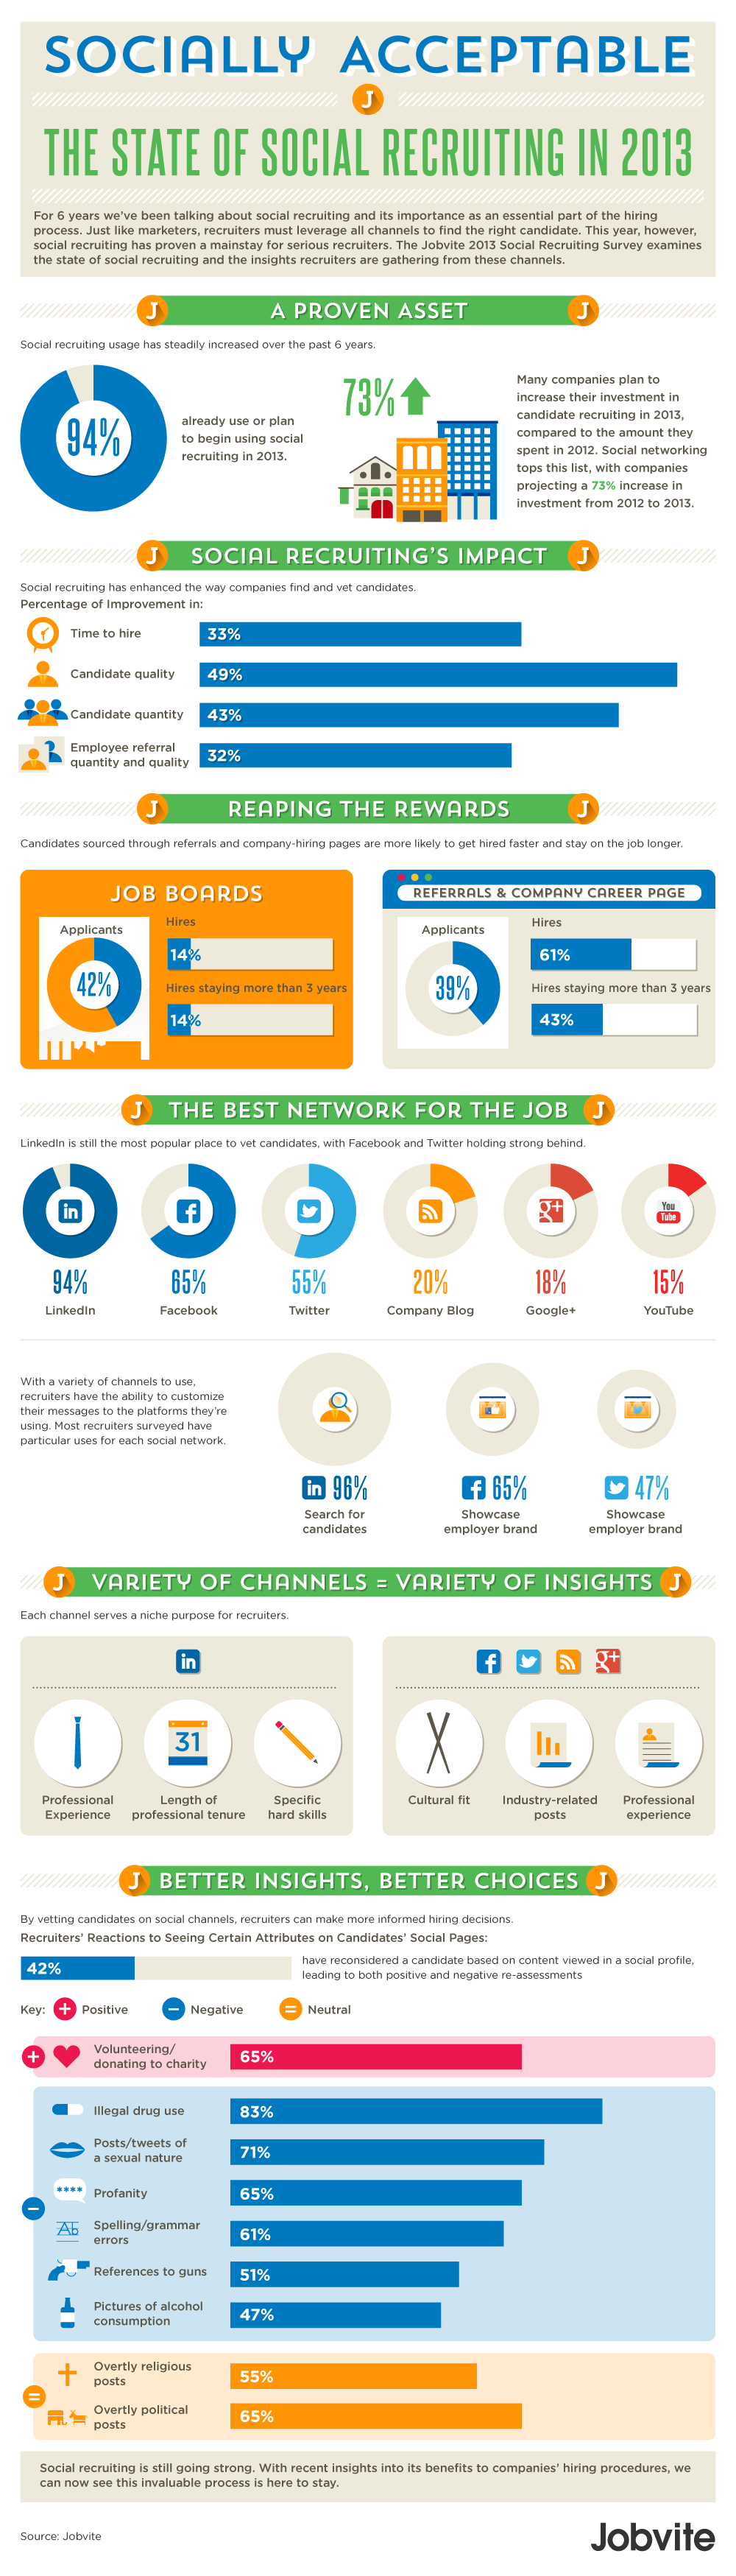 Selezioni del personale e Social - The State of Social Recruiting in 2013